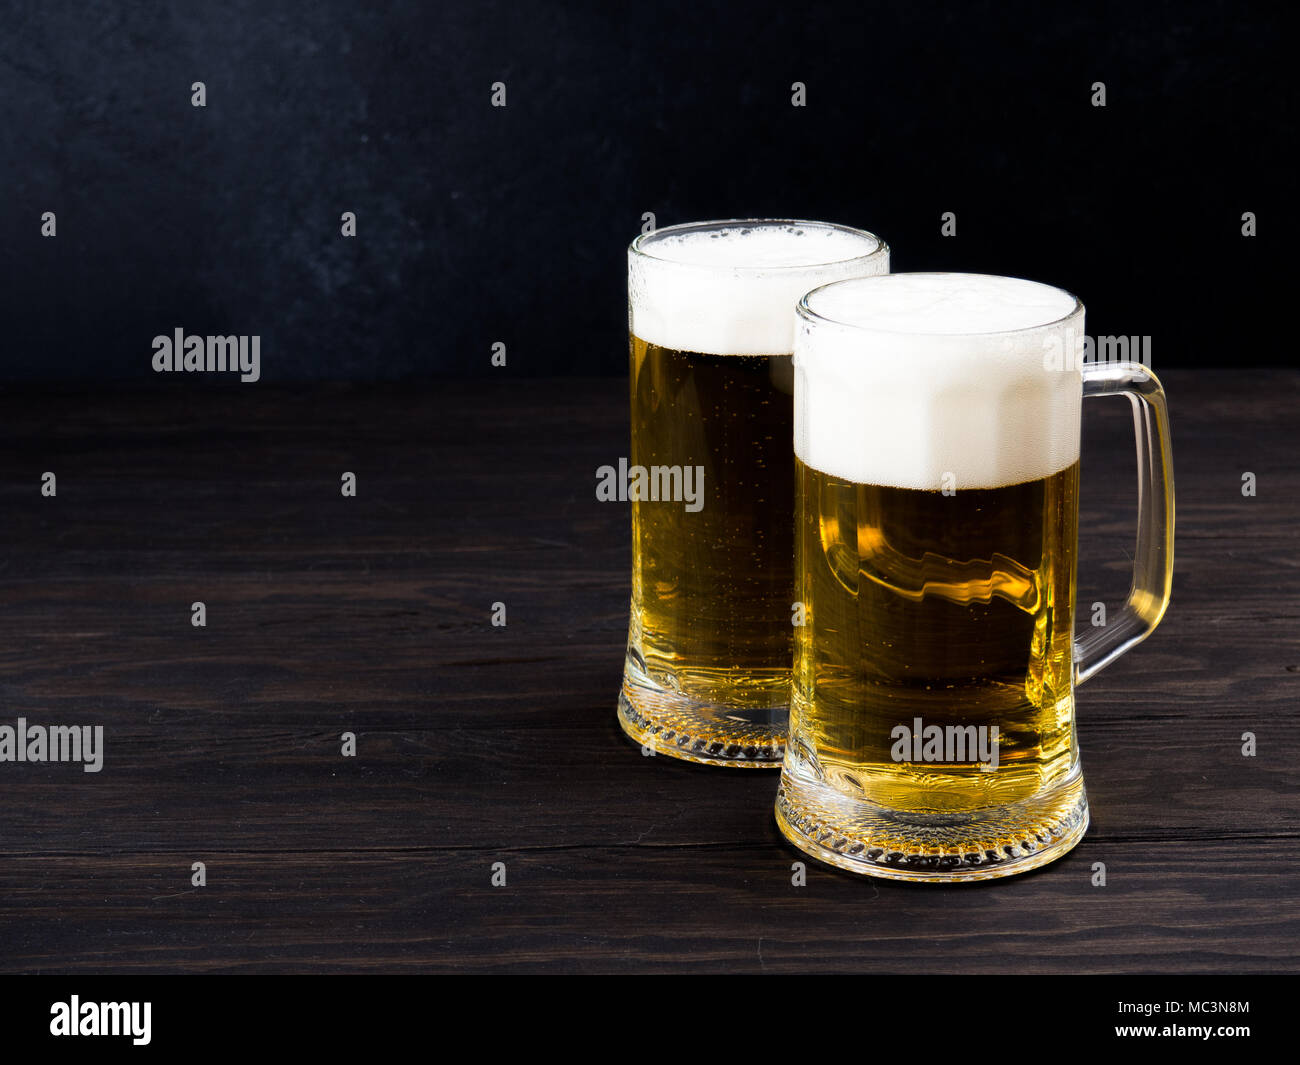 Two glasses of lager served on old wooden planks - Stock Image